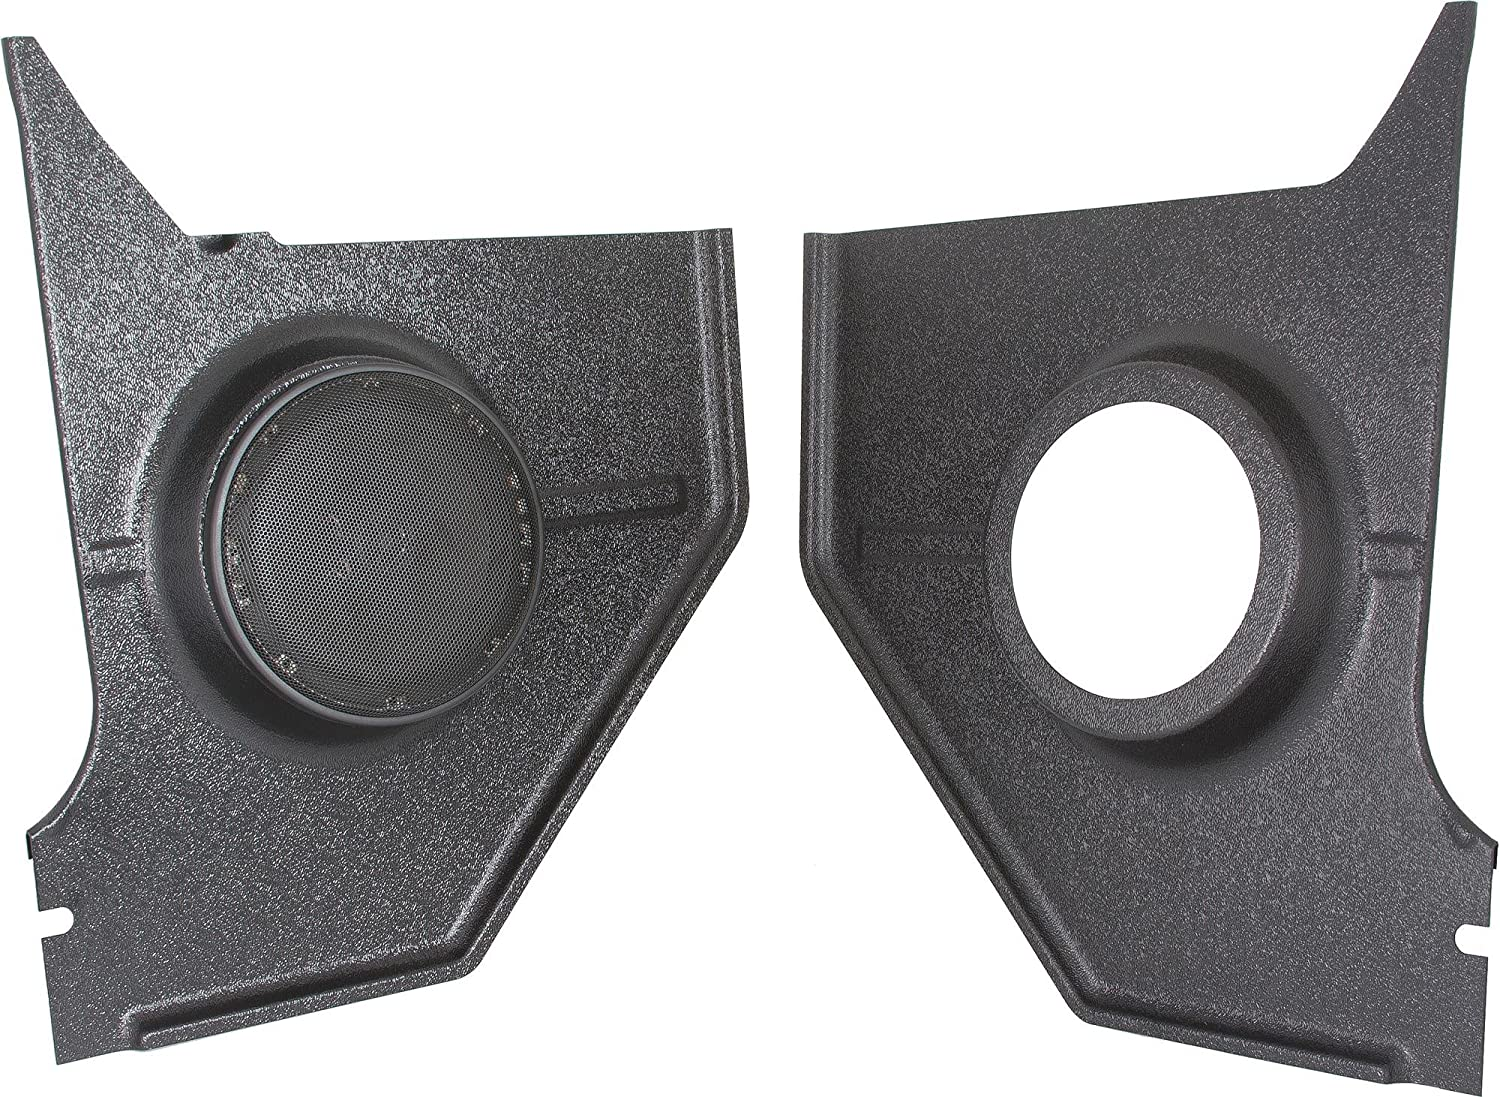 RetroSound KP-F39-6466-652 Replacement Kick Panel with R-52N 6.5' Speaker for Ford Mustang Coupe/Fastback